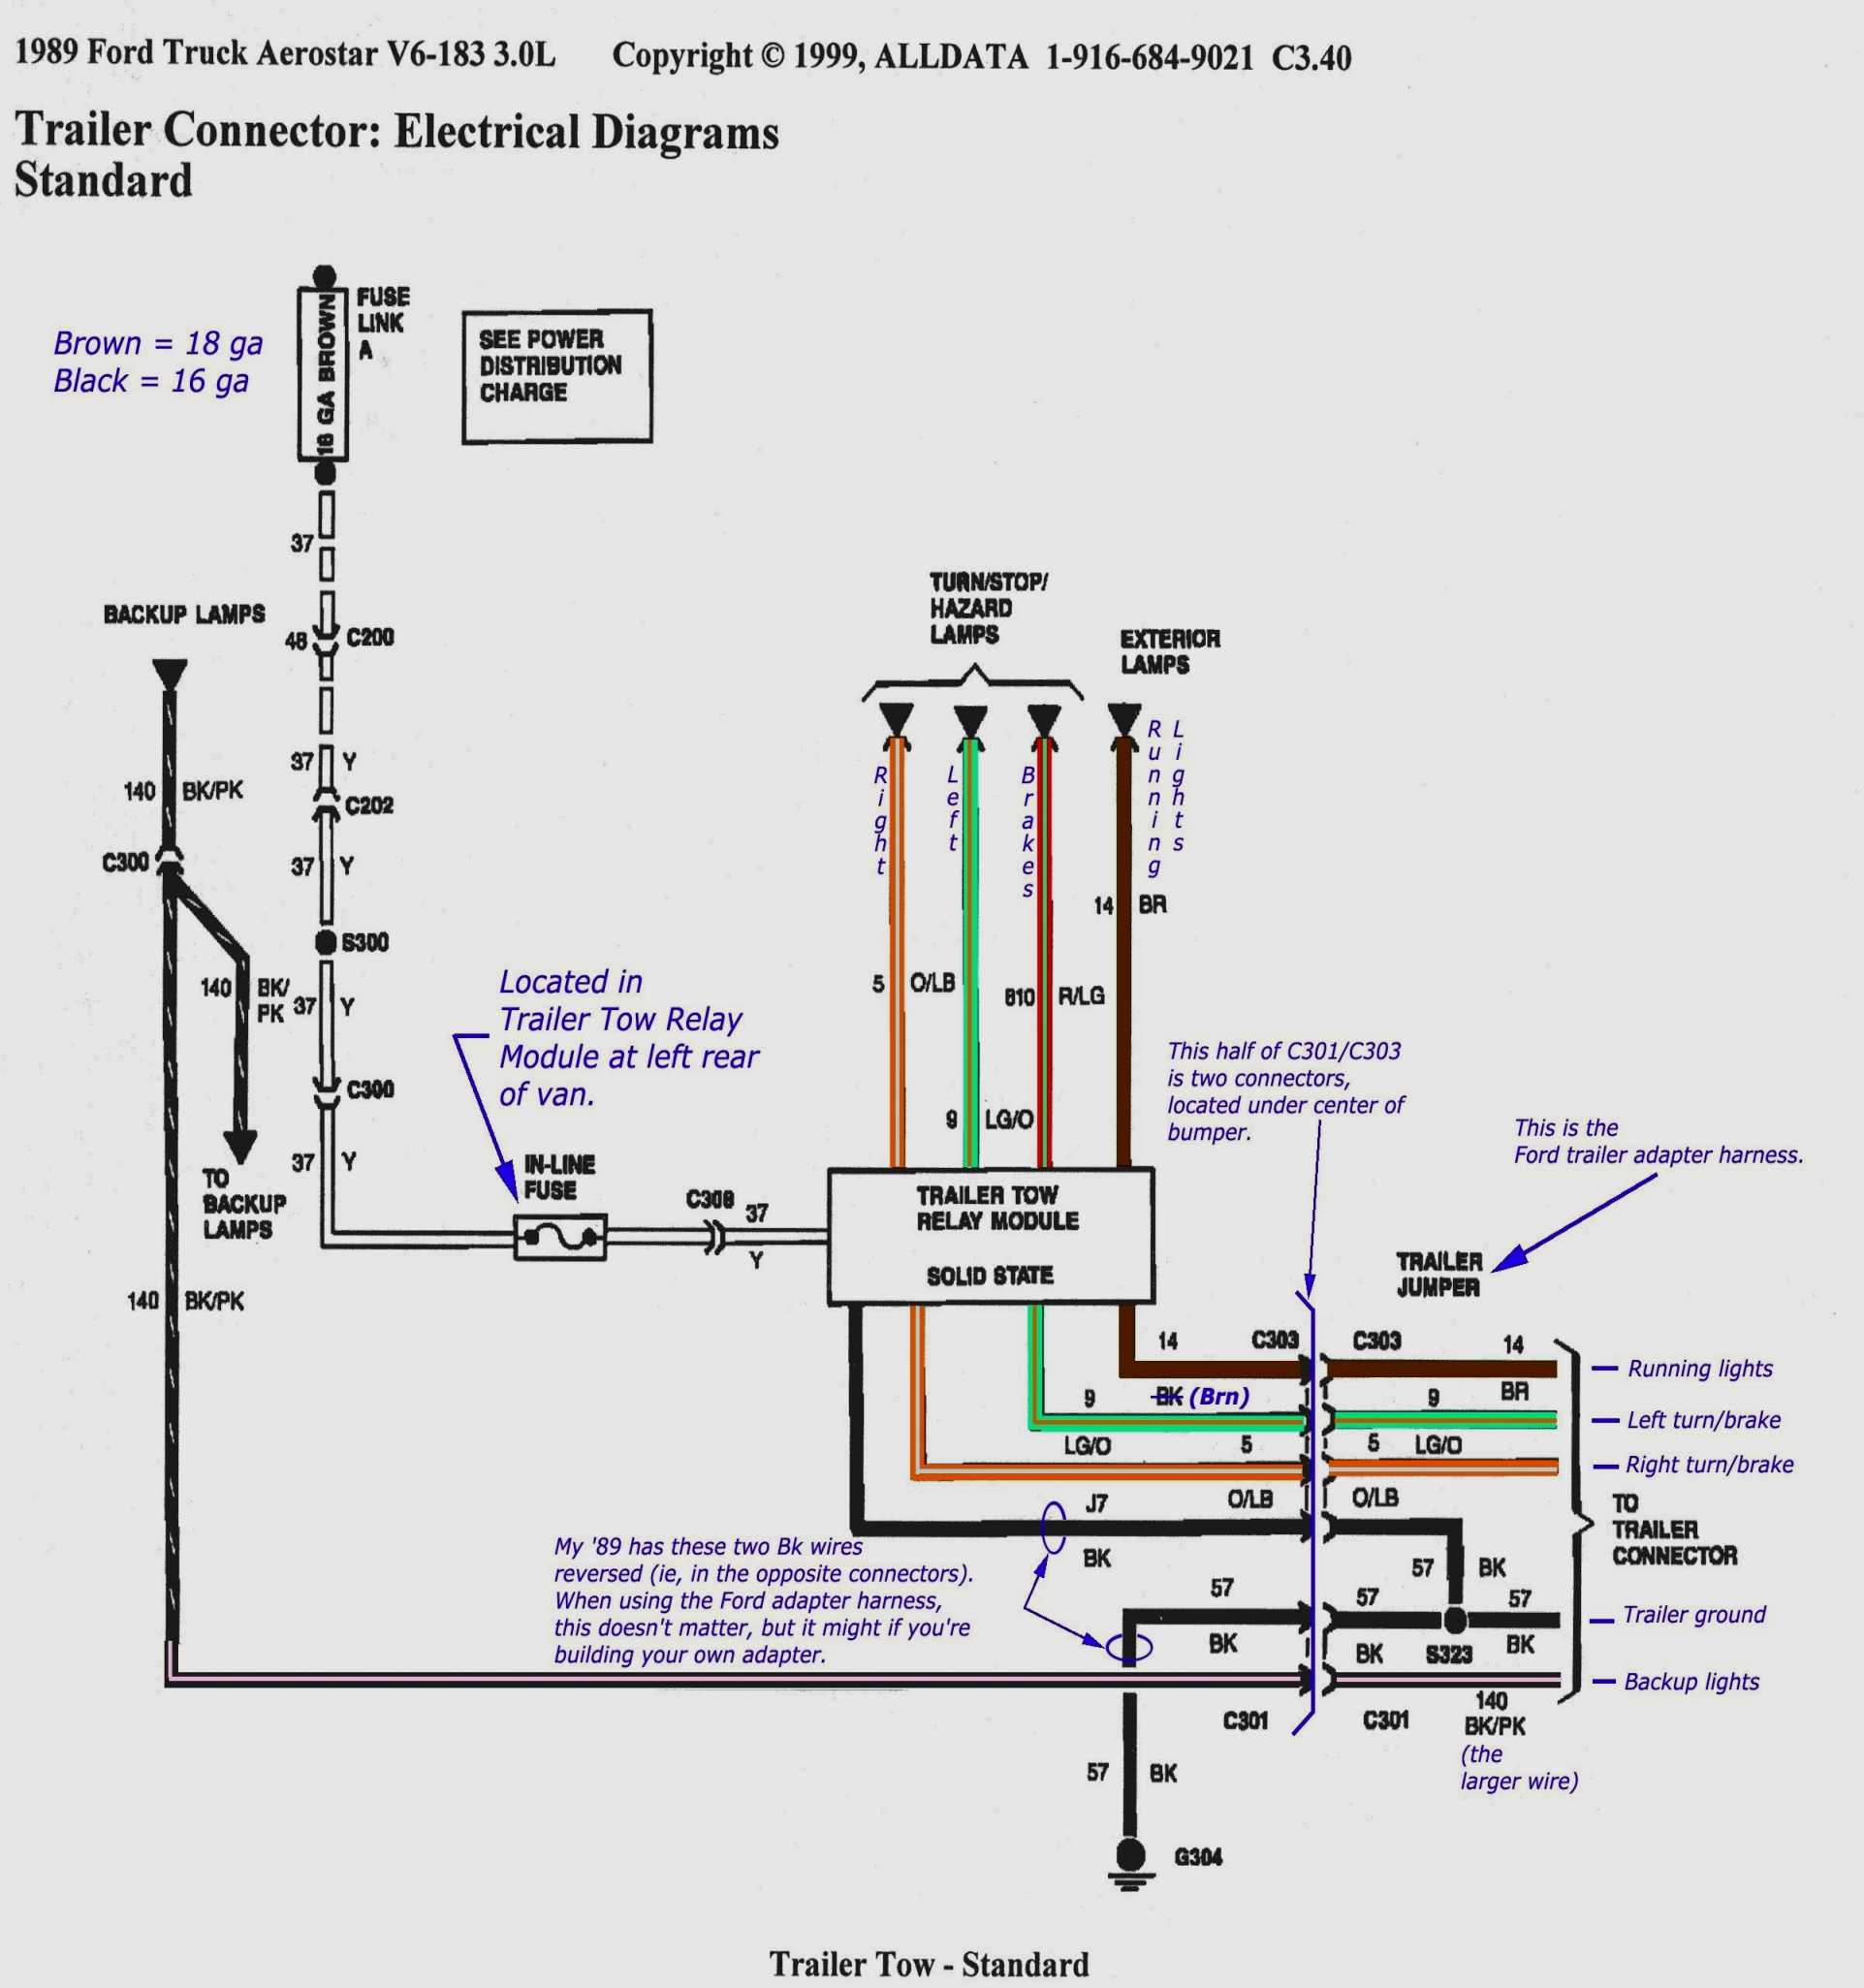 7 Way Semi Trailer Wiring Diagram - Wiring Diagrams - Trailer Wiring Diagram 4 Way To 7 Way